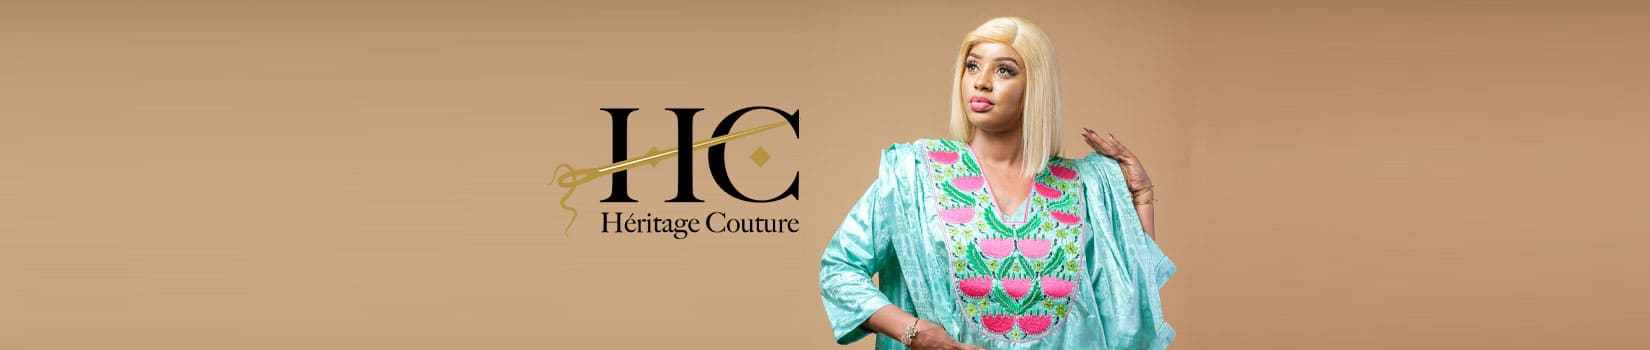 HERITAGE COUTURE